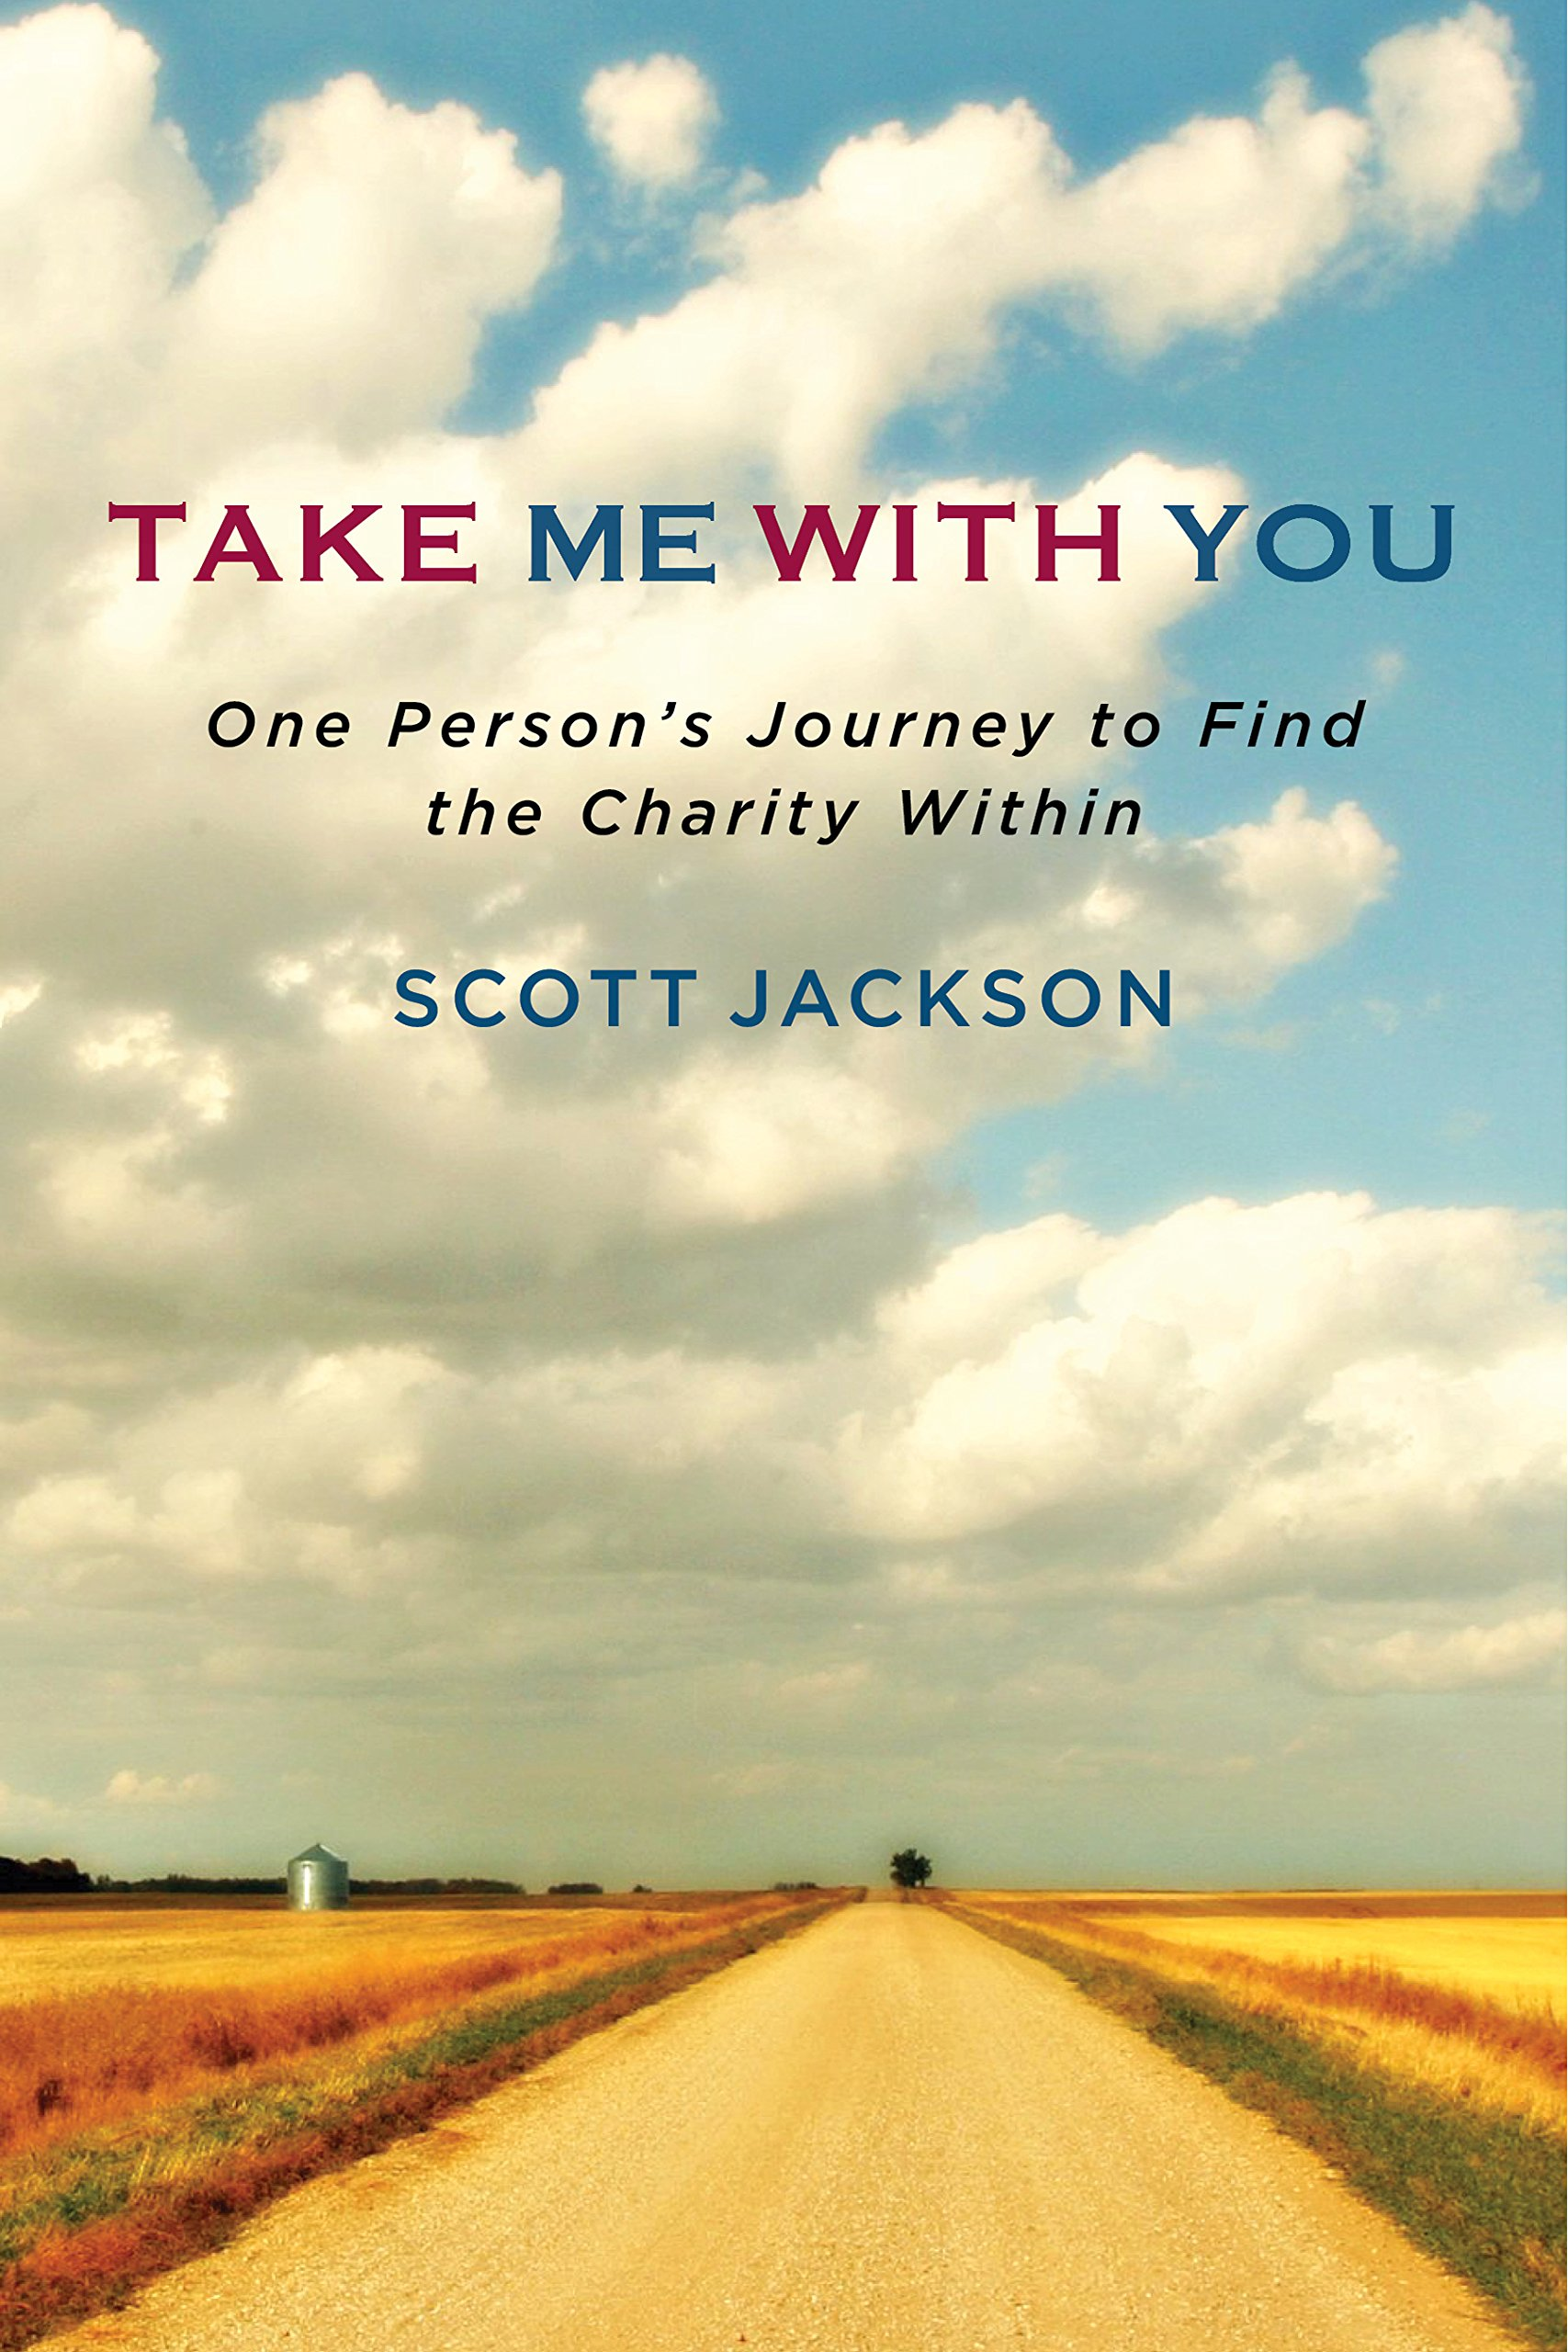 Take Me With You: One Person's Journey to Find the Charity Within By Scott Jackson Hardcover, $26.95; 244 pages